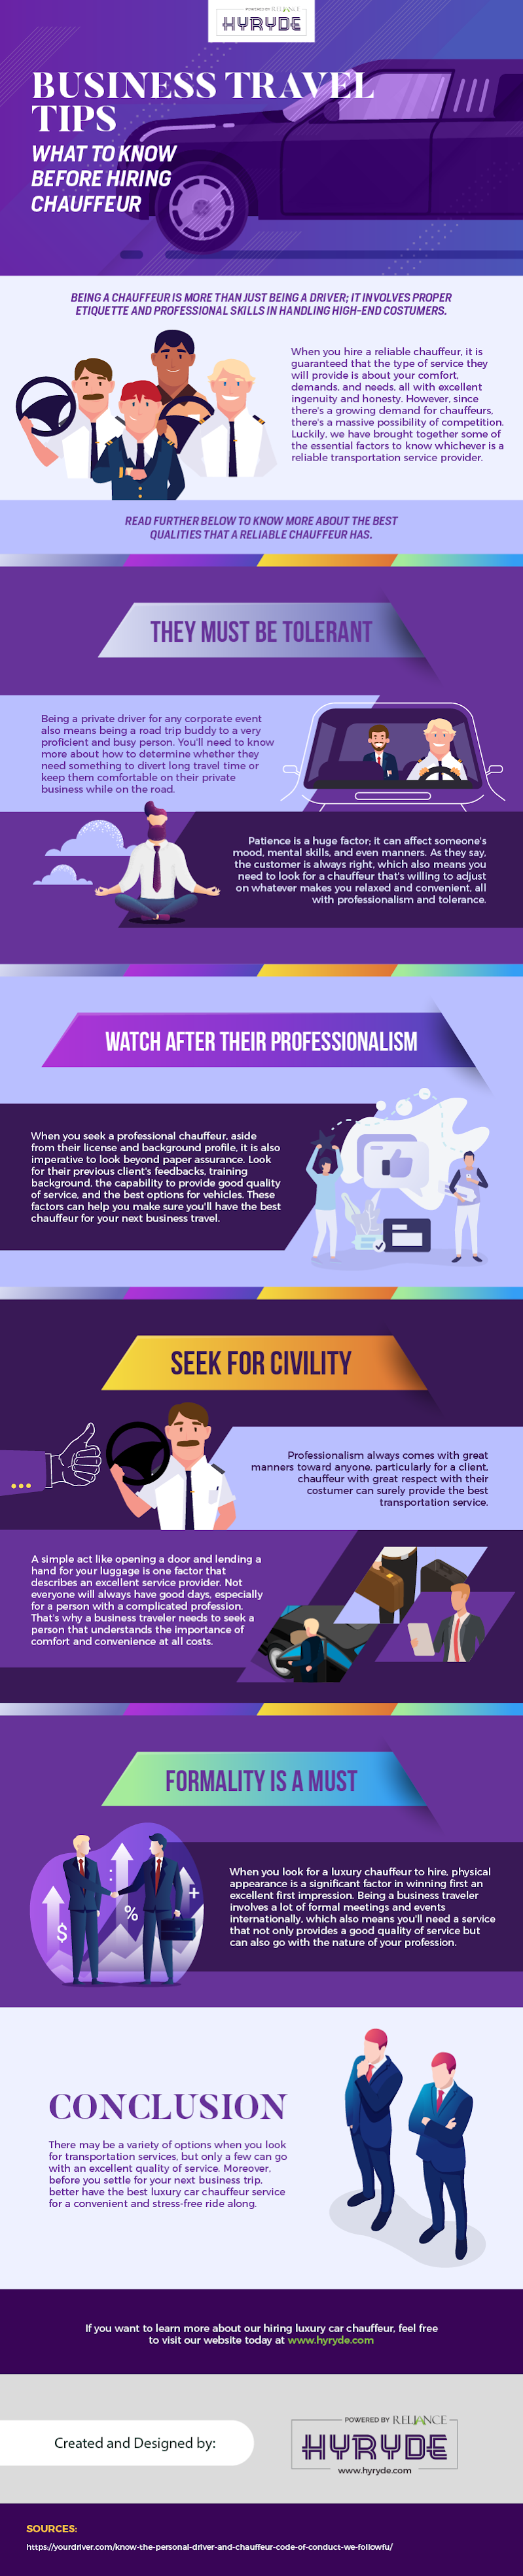 Business Travel Trips: What to Know Before Hiring Chauffeur #infographic